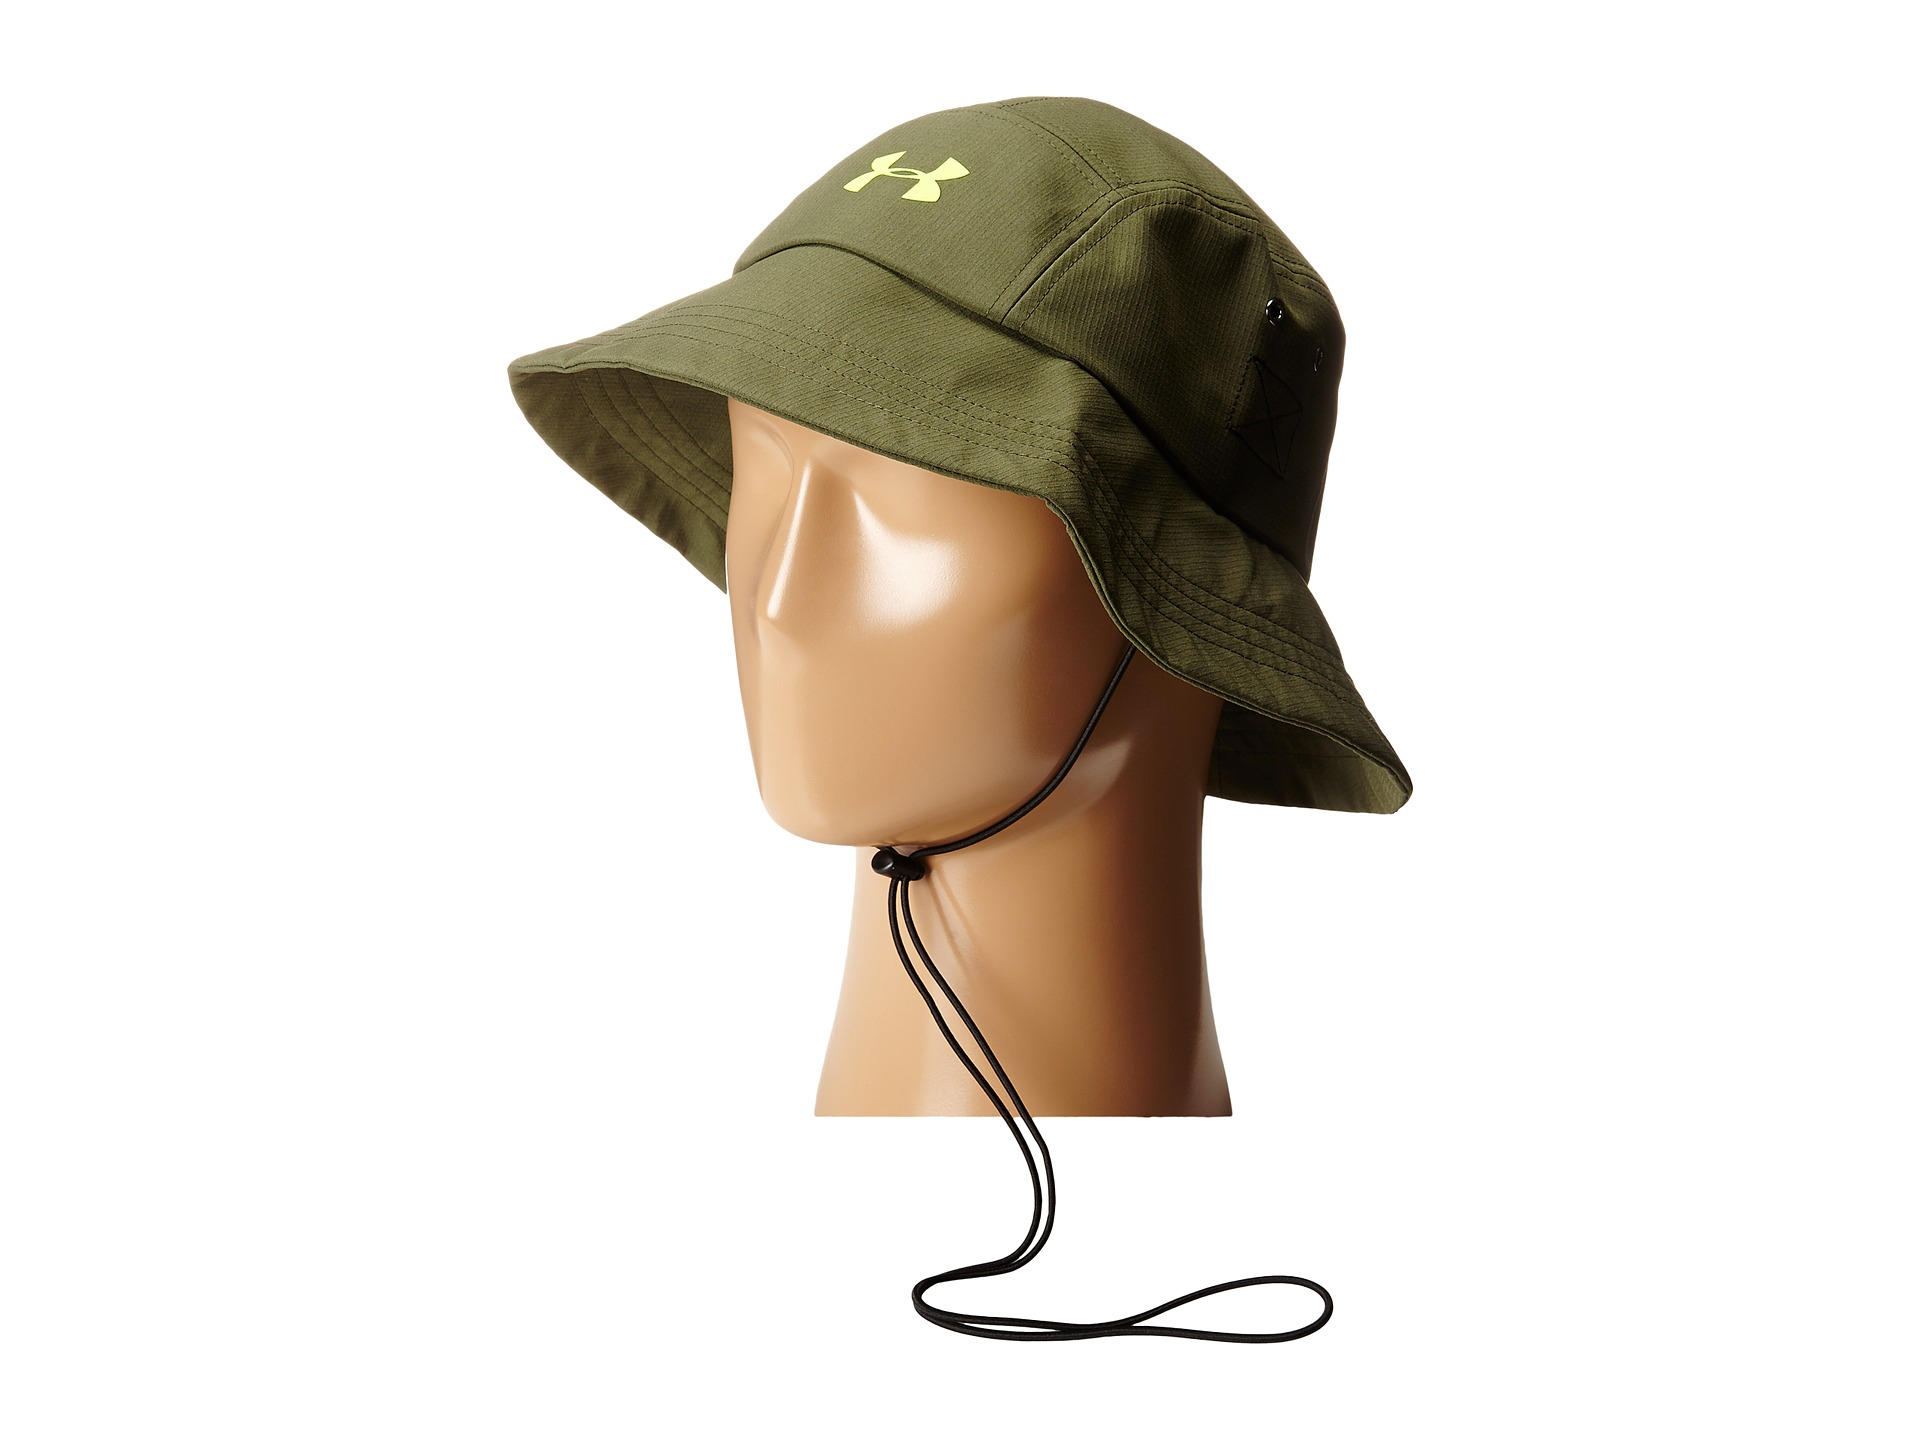 48f59106125 ... inexpensive lyst under armour ua toughest bucket hat in green for men  966df 596c2 ...